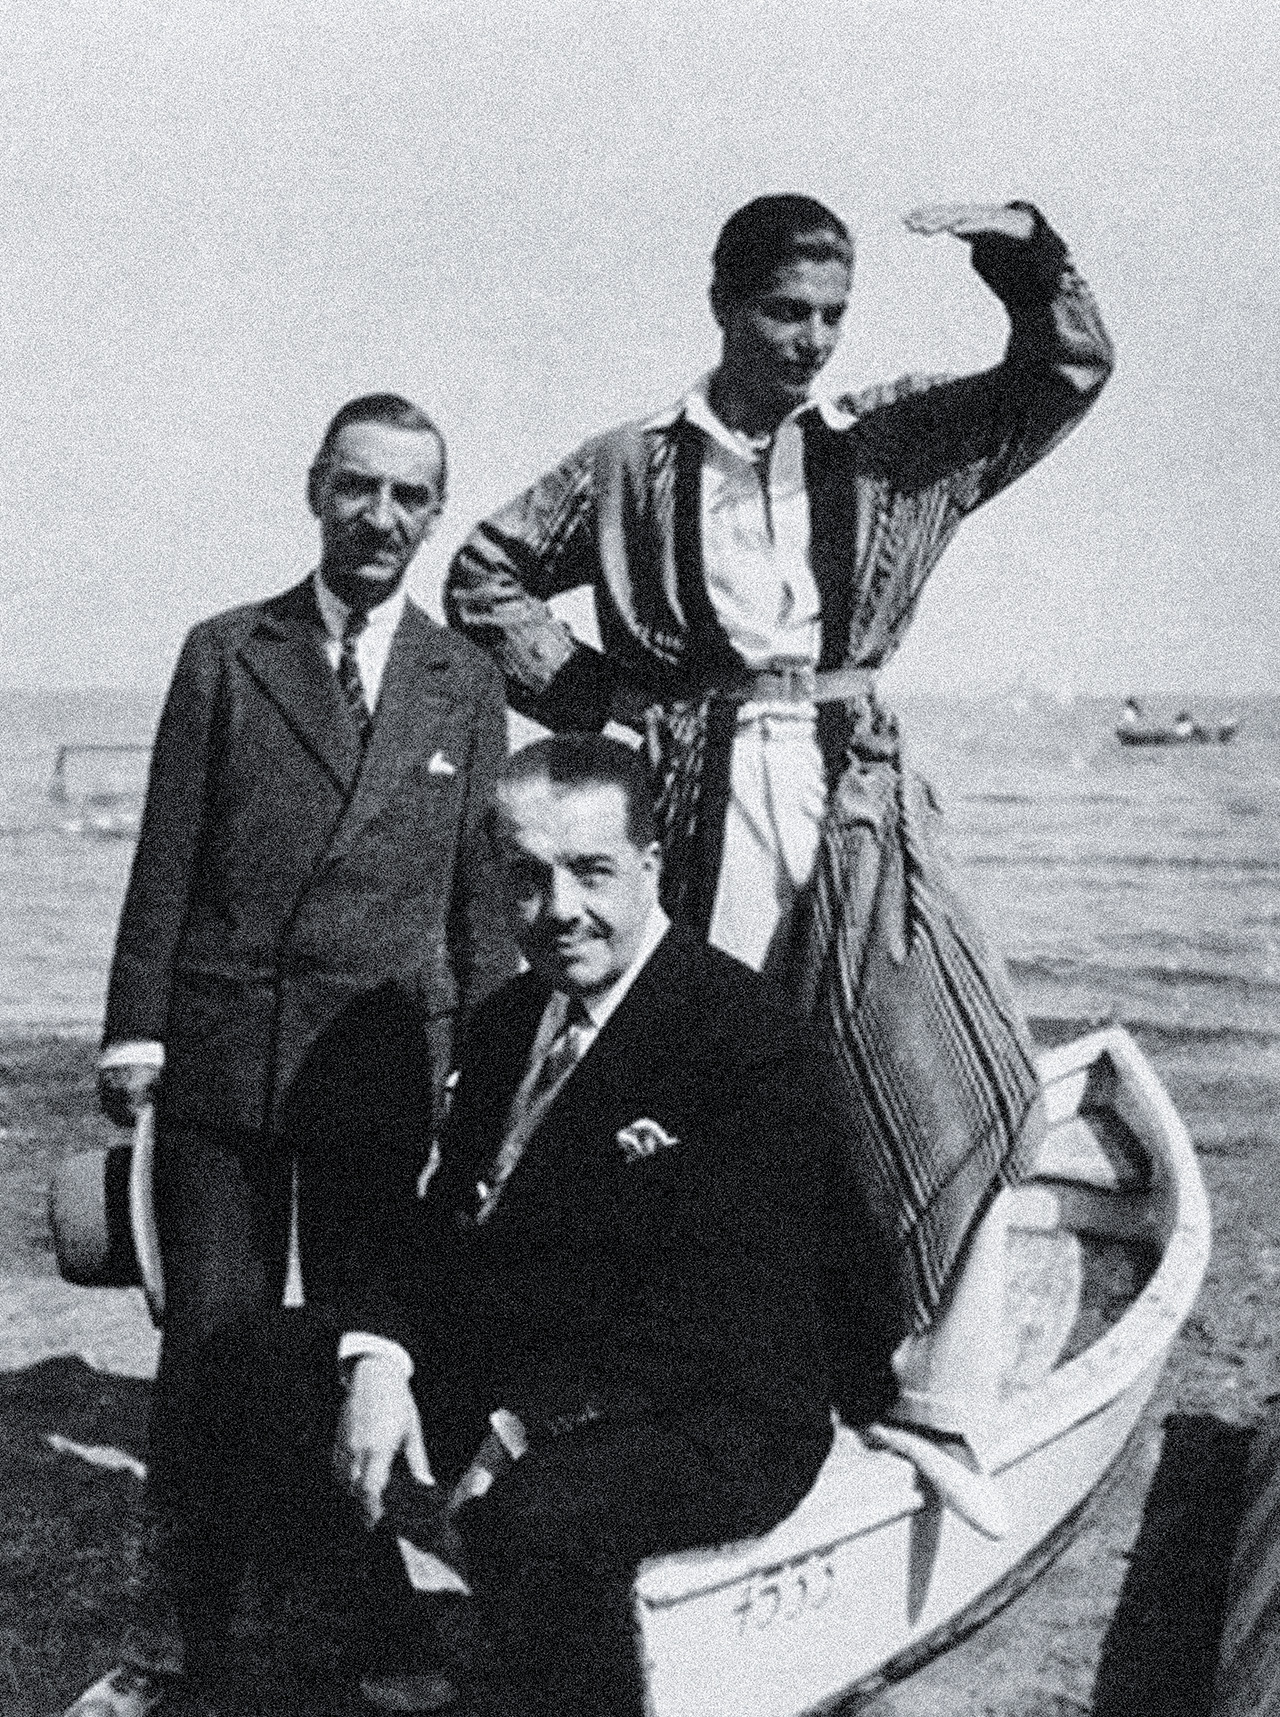 a biography of sergei diaghilev a founder of the ballets russes Portrait of sergei diaghilev by valentin serov  born in 1872, diaghilev had the  kind of privileged childhood you might read about  a jean cocteau poster for  diaghilev's ballets russes performances in monte-carlo  both ninette de  valois, founder of the royal ballet and birmingham royal ballet, and.